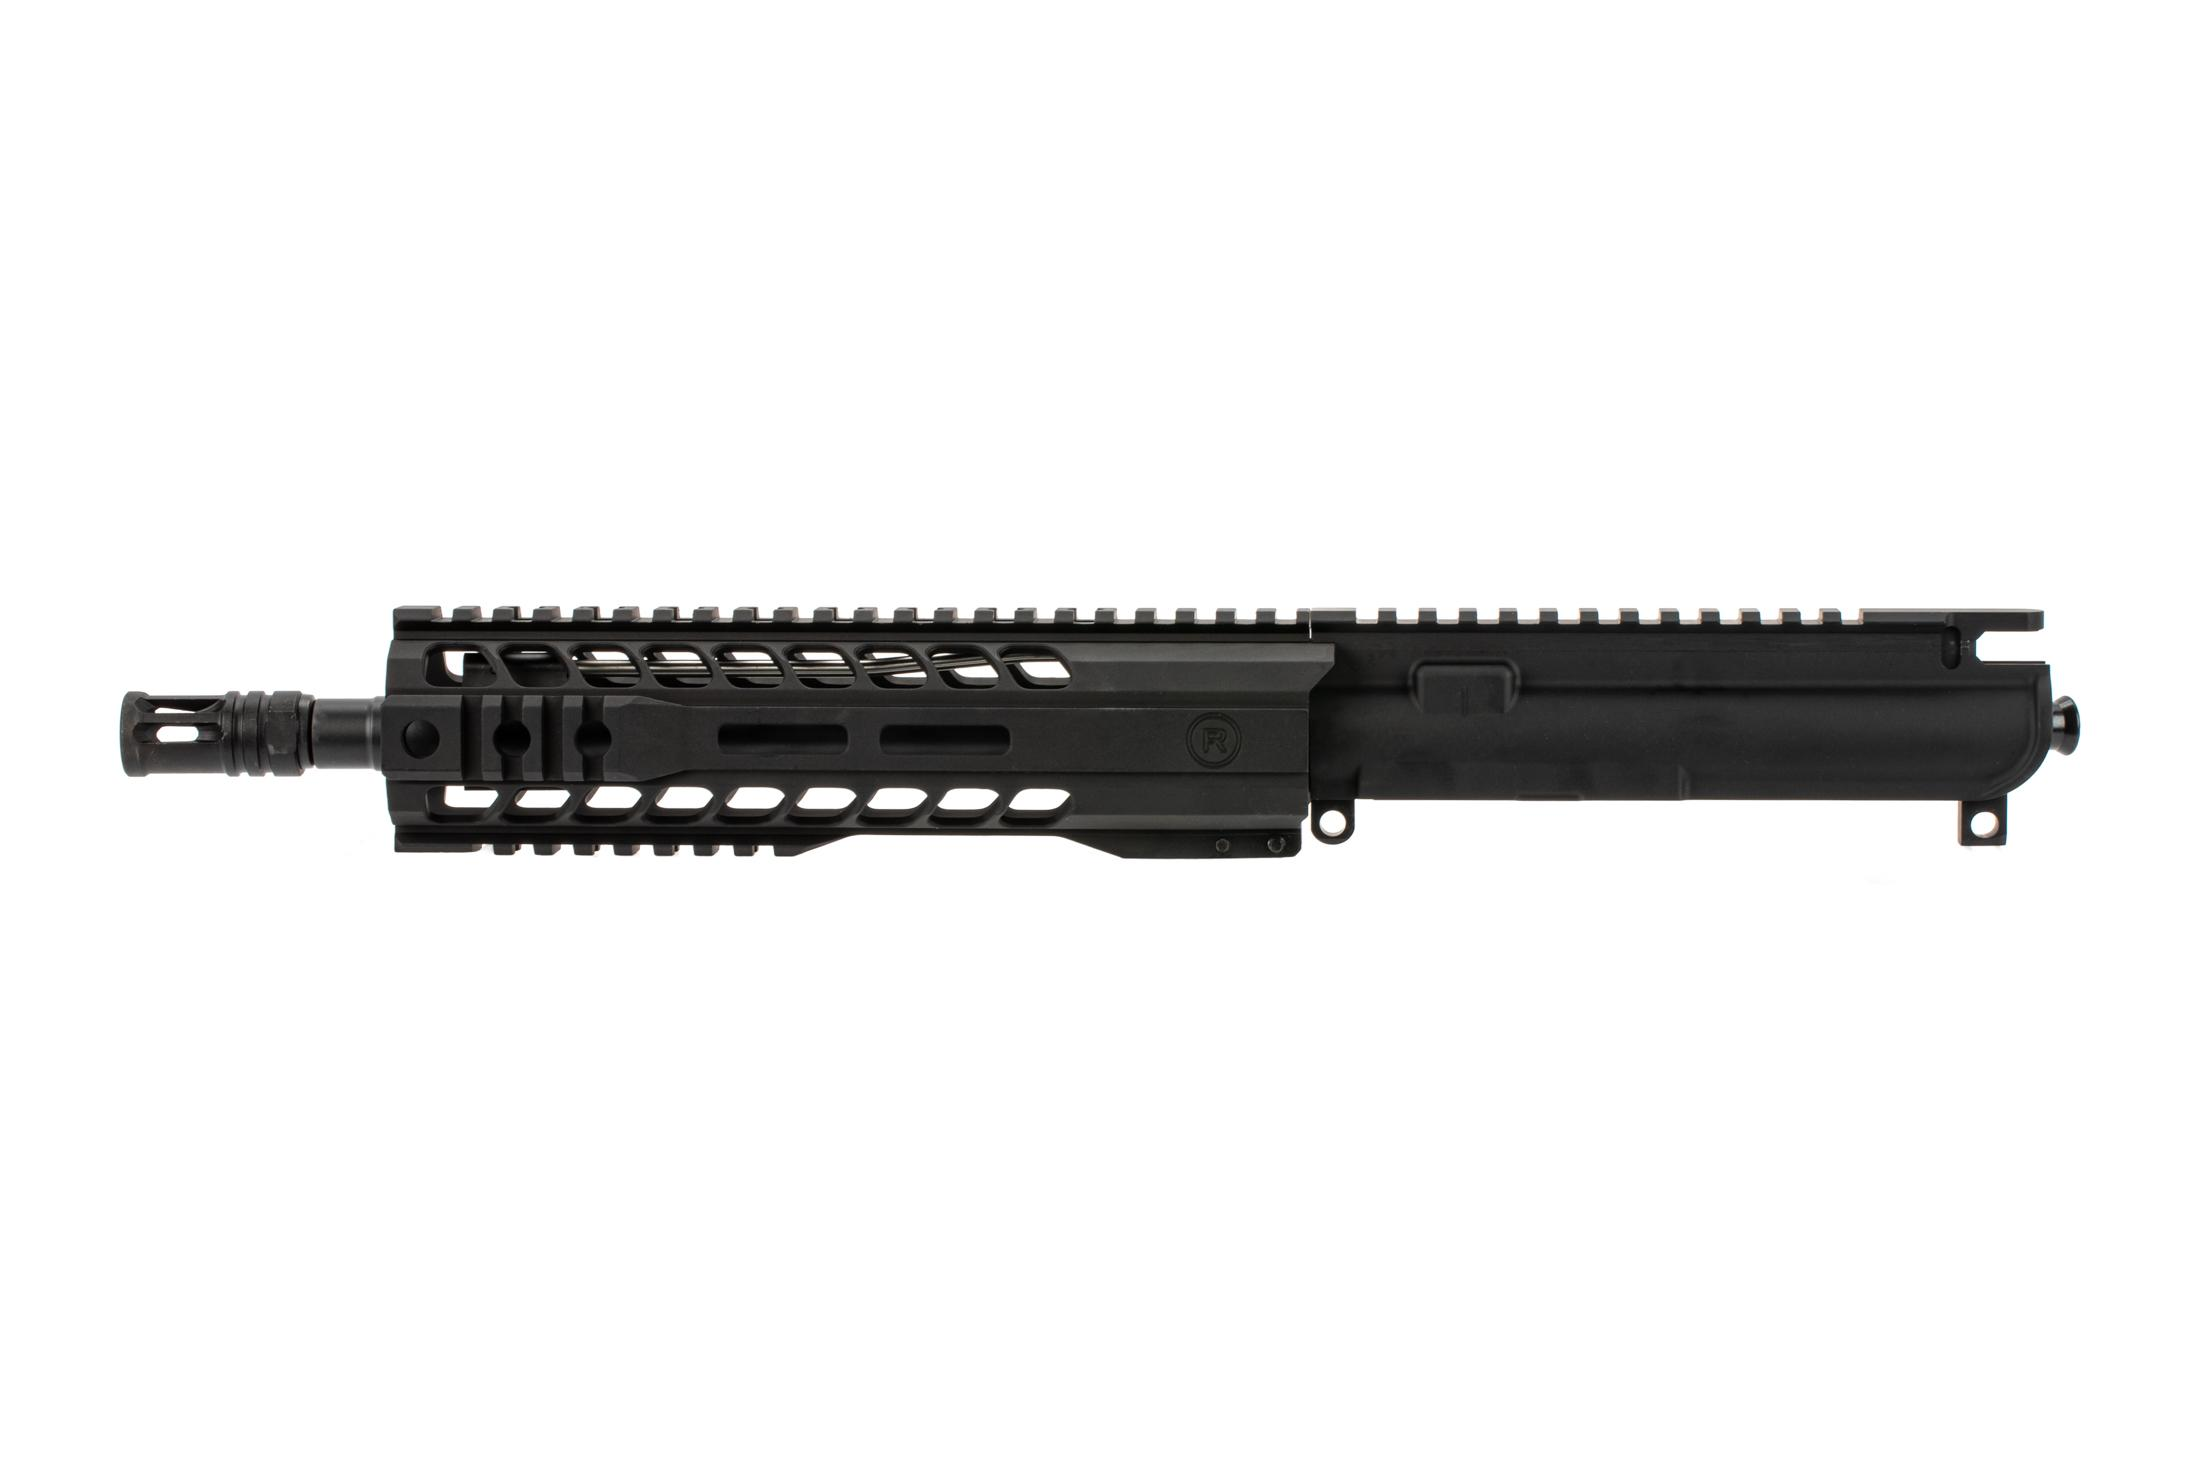 The Radical Firearms 5.56 NATO AR-15 barreled upper receiver group features a carbine length gas system